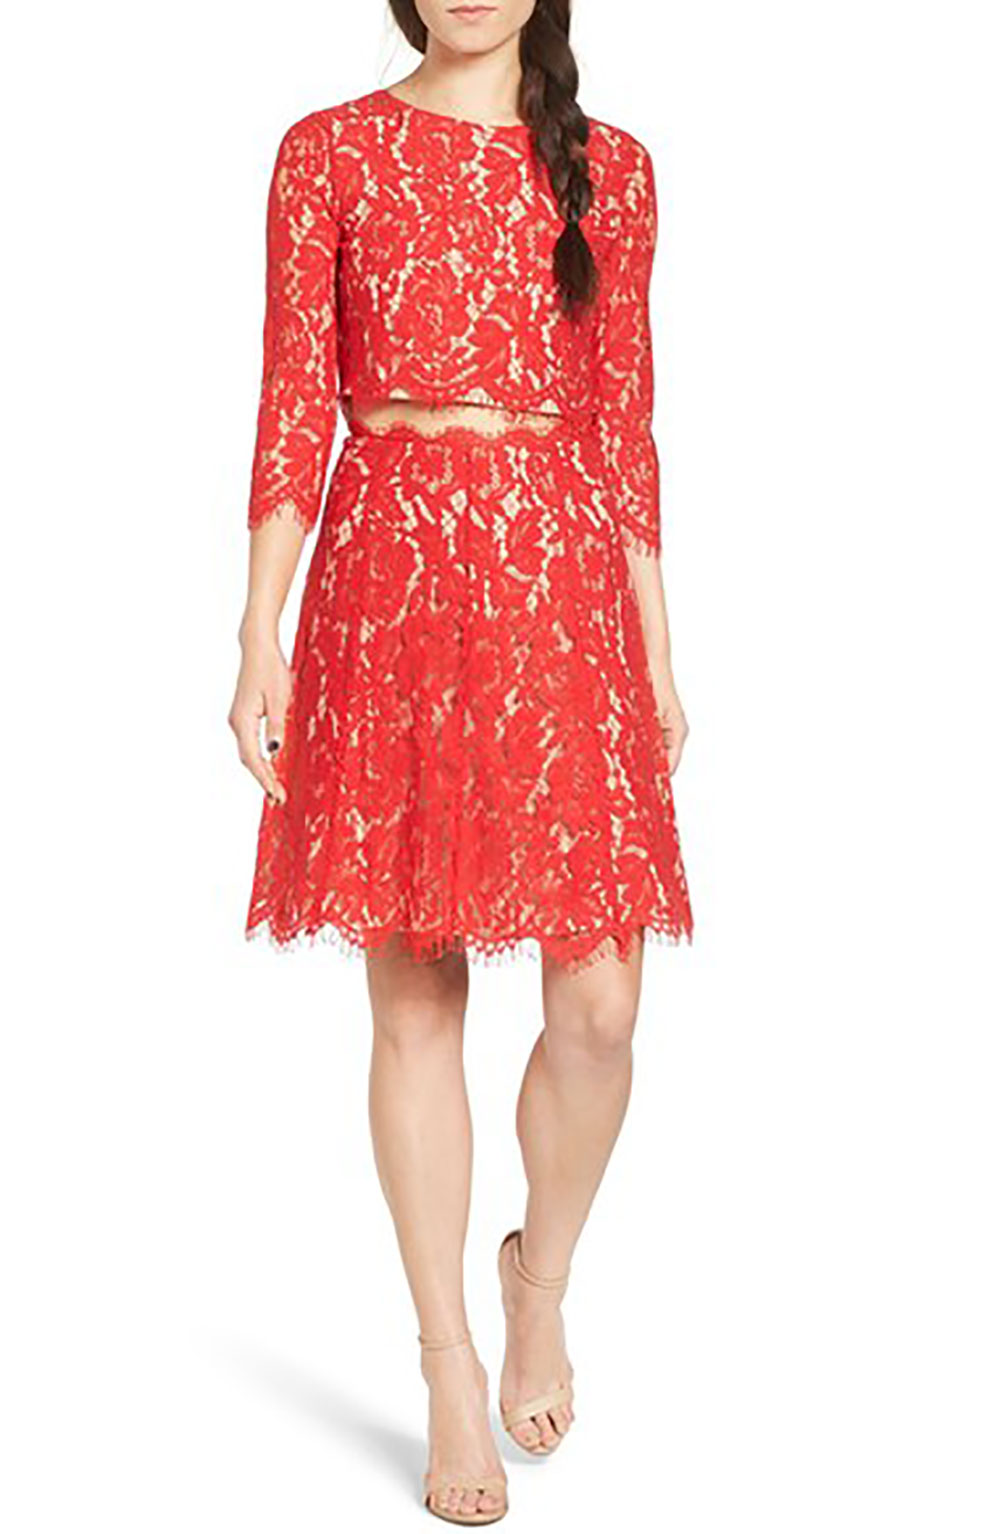 Red Lace Two Piece Dress